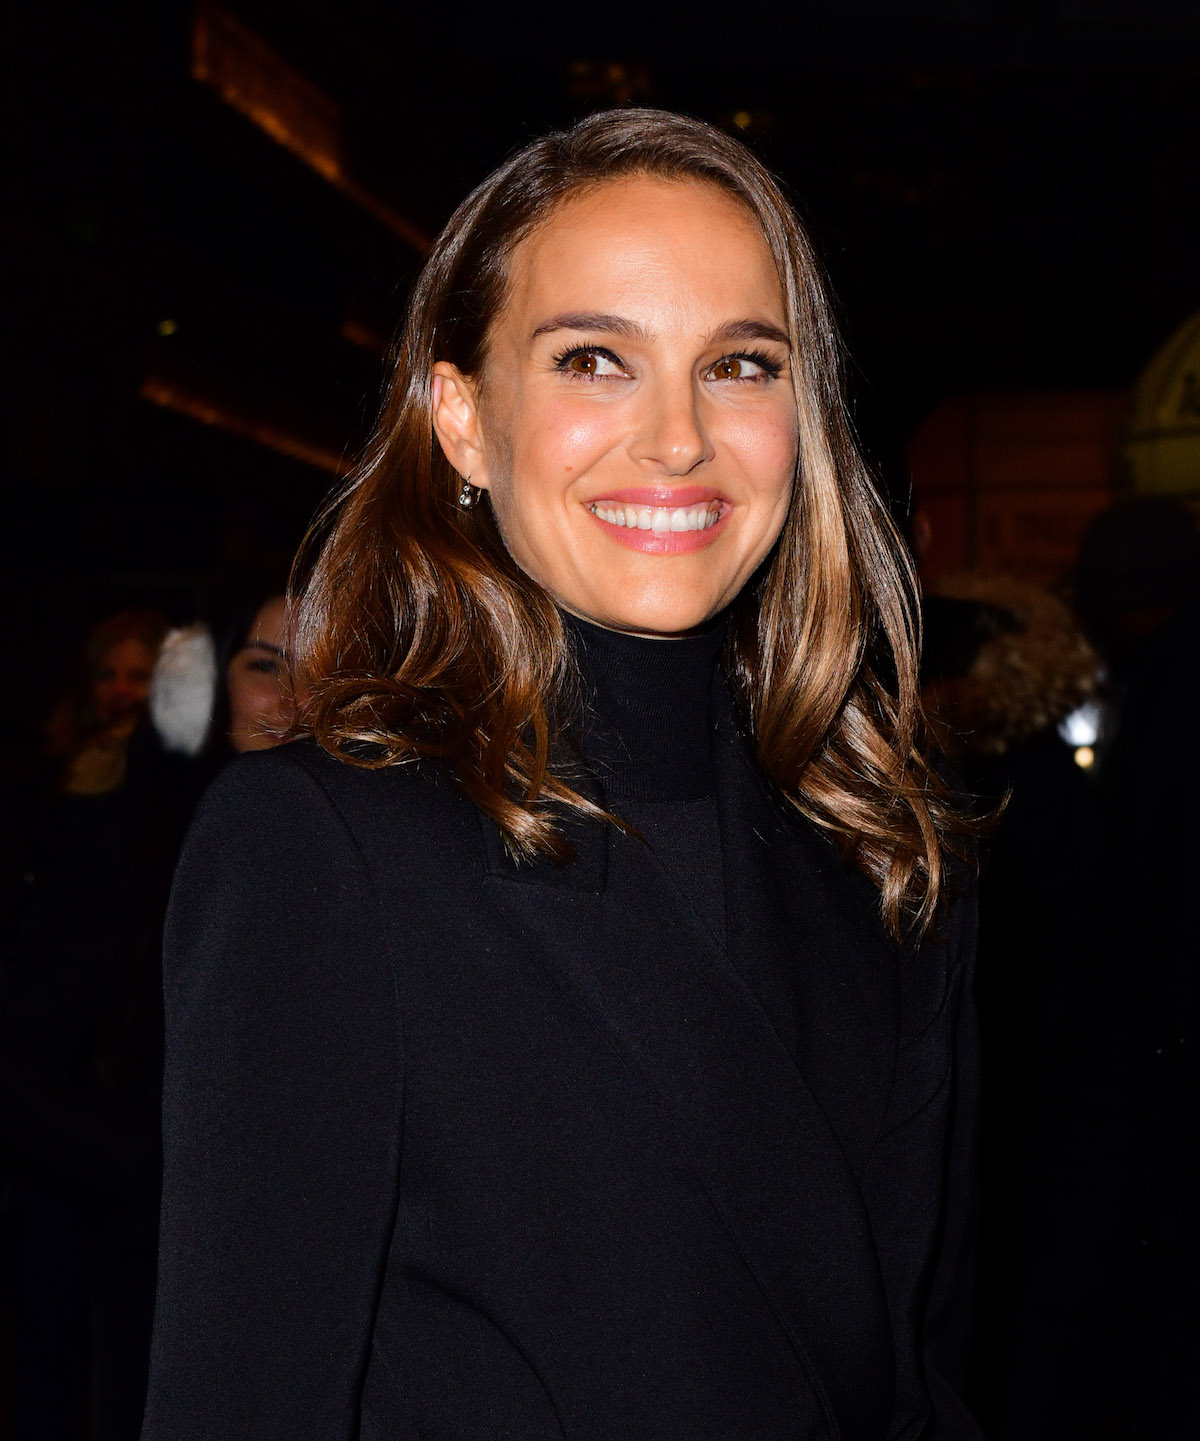 Natalie Portman (photo by James Devaney / GC Images).